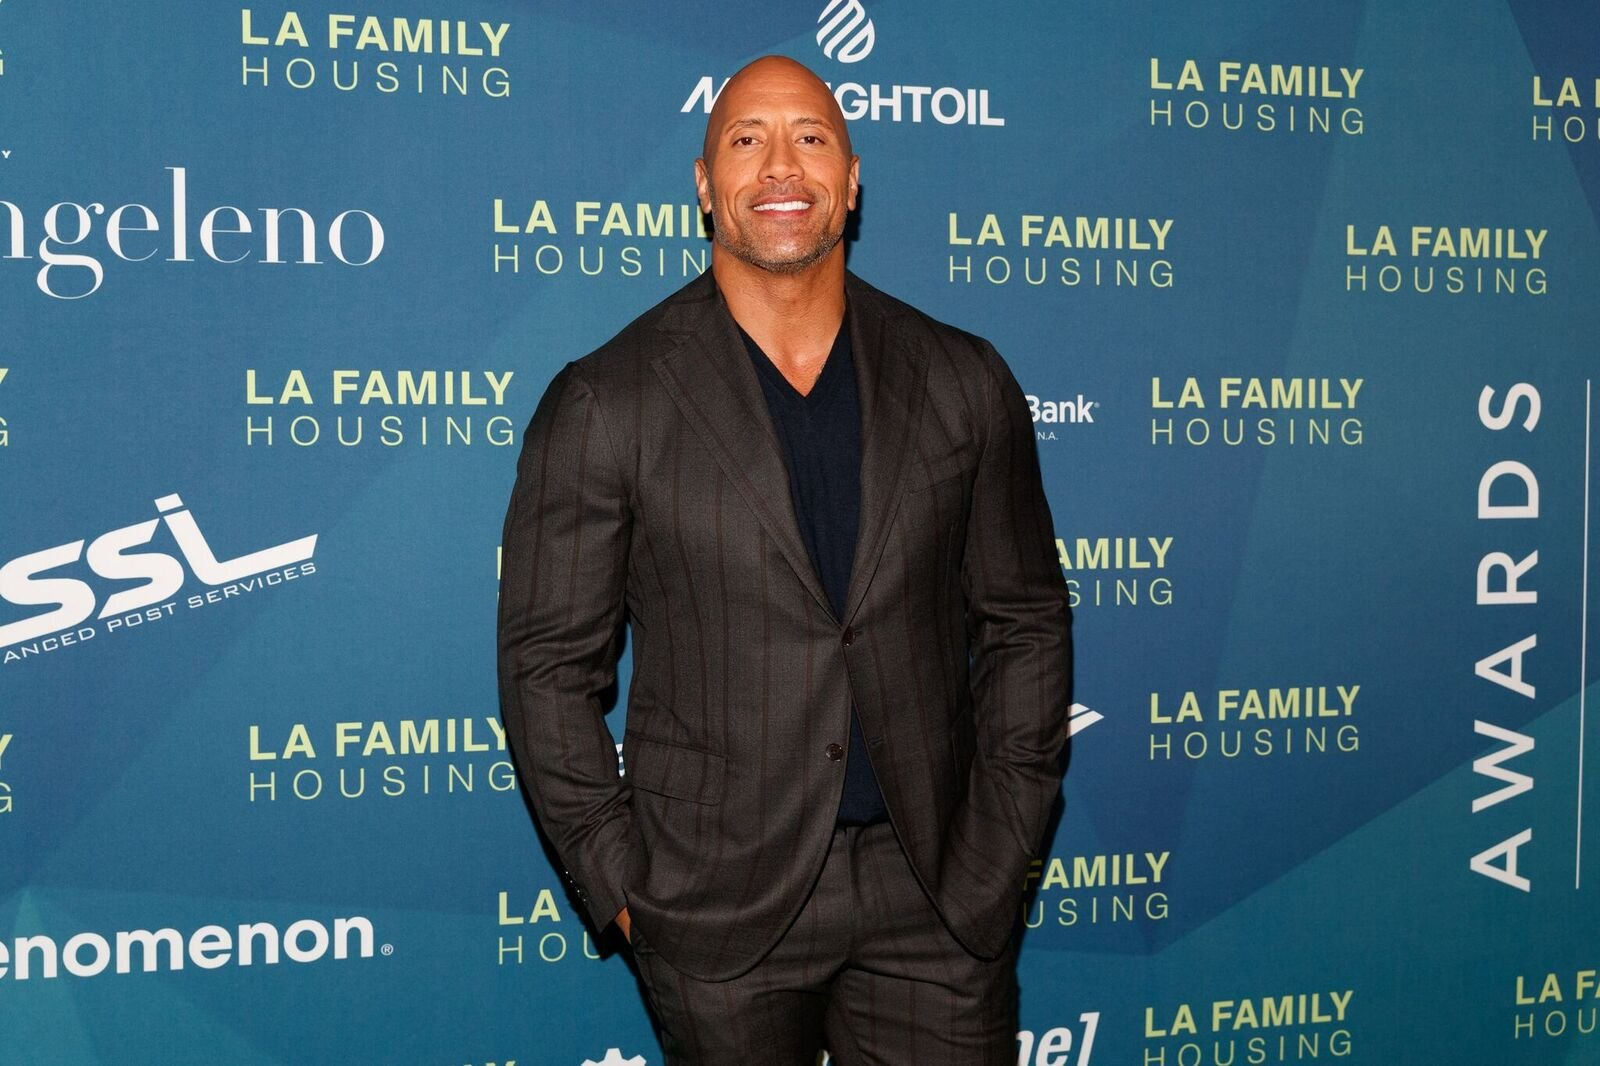 Dwayne Johnson arrives to the LAFH Awards at The Lot in West Hollywood on April 5, 2018 | Photo: Getty Images